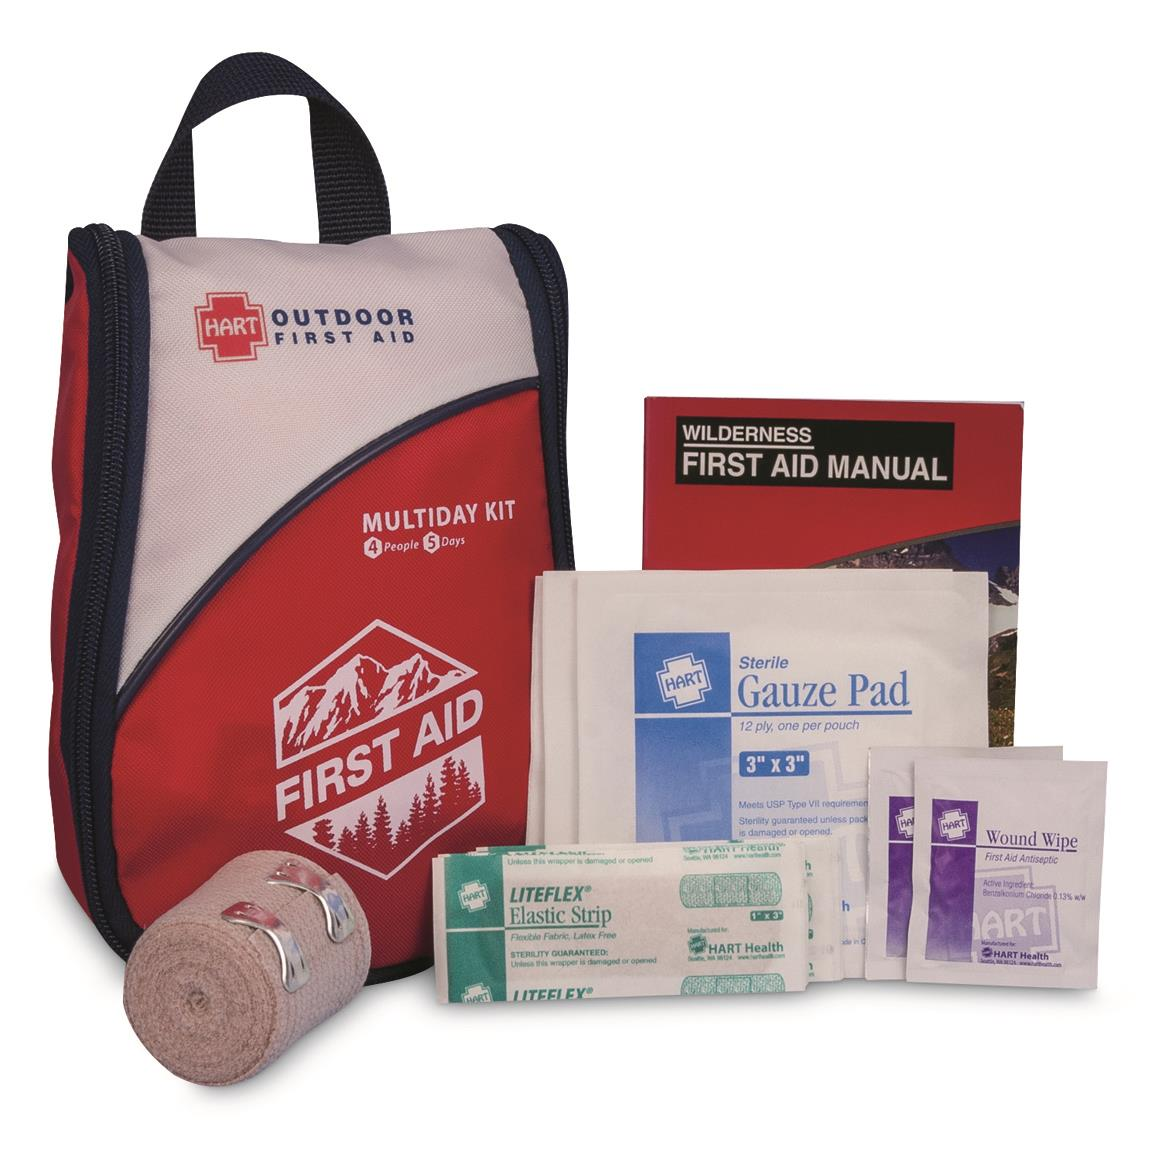 Contains 71 first aid items